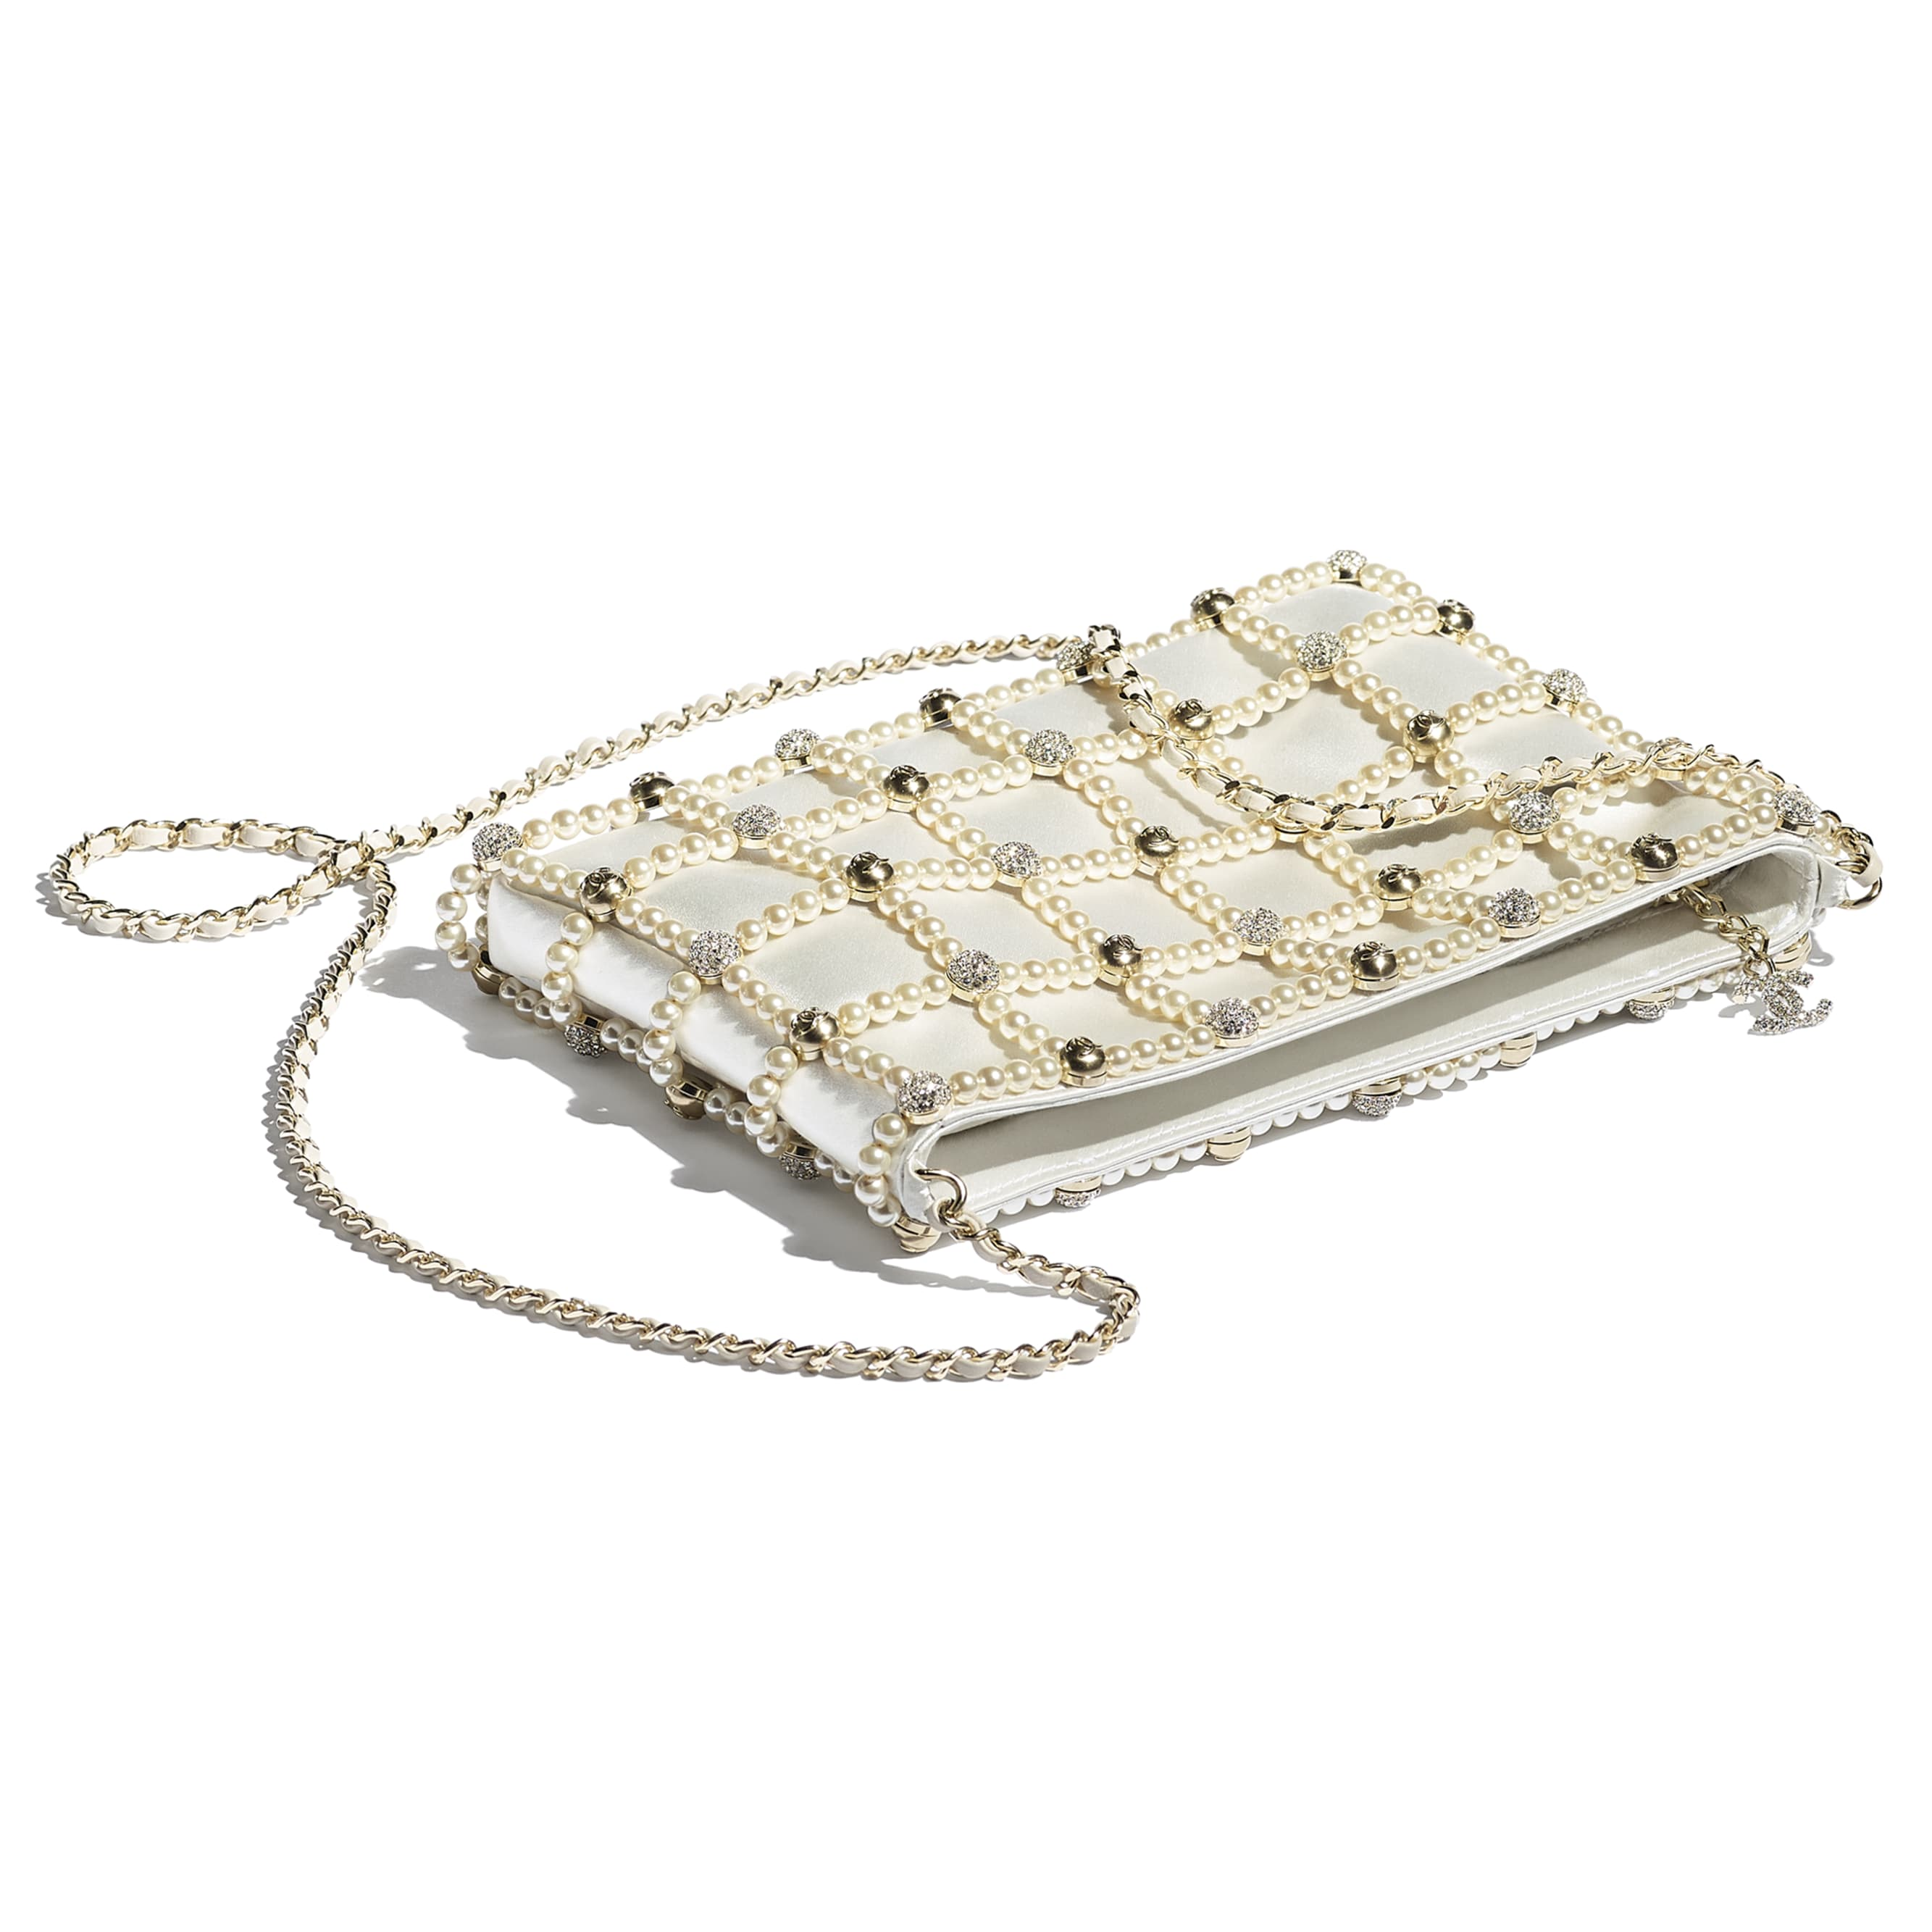 Clutch - White - Satin, Glass Pearls, Strass & Gold-Tone Metal - CHANEL - Other view - see standard sized version